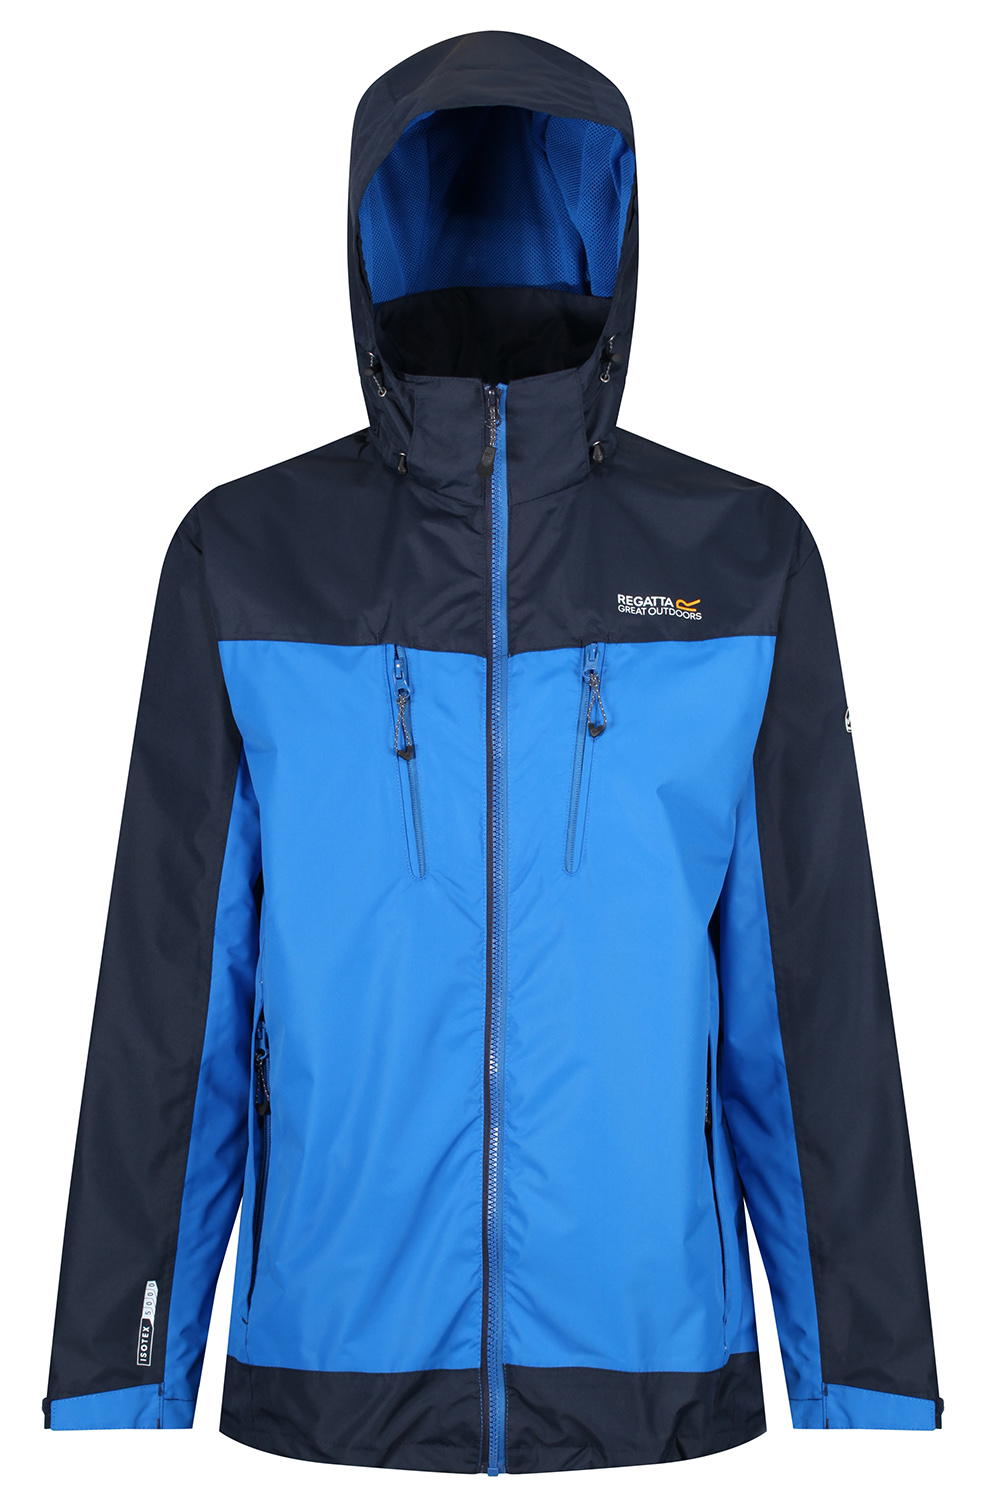 Regatta-Mens-Calderdale-II-Jacket-Waterproof-Breathable-Isotex-5000-Hooded-Coat thumbnail 12